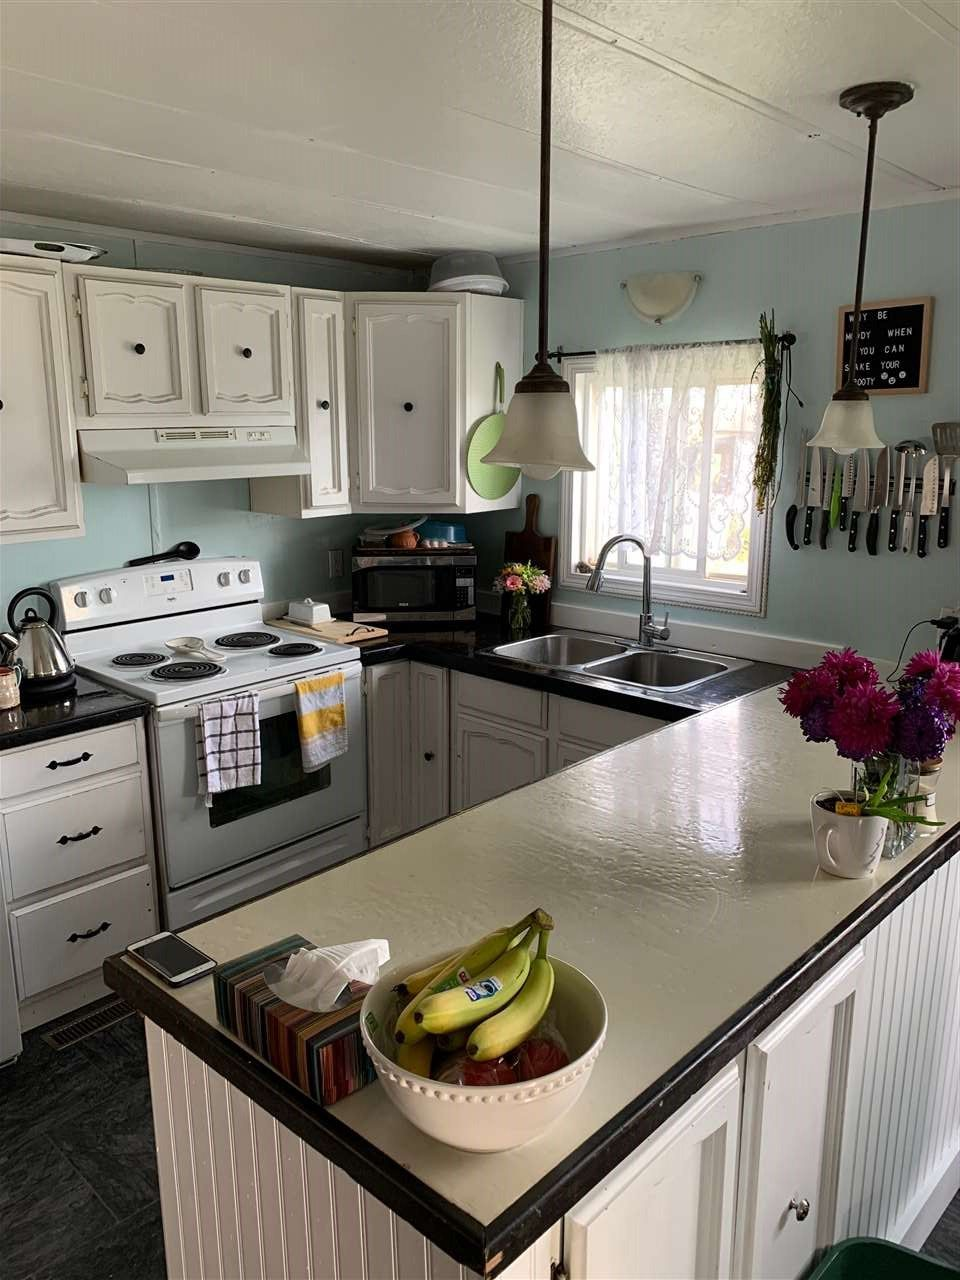 """Photo 6: Photos: 78 8420 ALASKA Road in Fort St. John: Fort St. John - City SE Manufactured Home for sale in """"PEACE COUNTRY"""" (Fort St. John (Zone 60))  : MLS®# R2495486"""